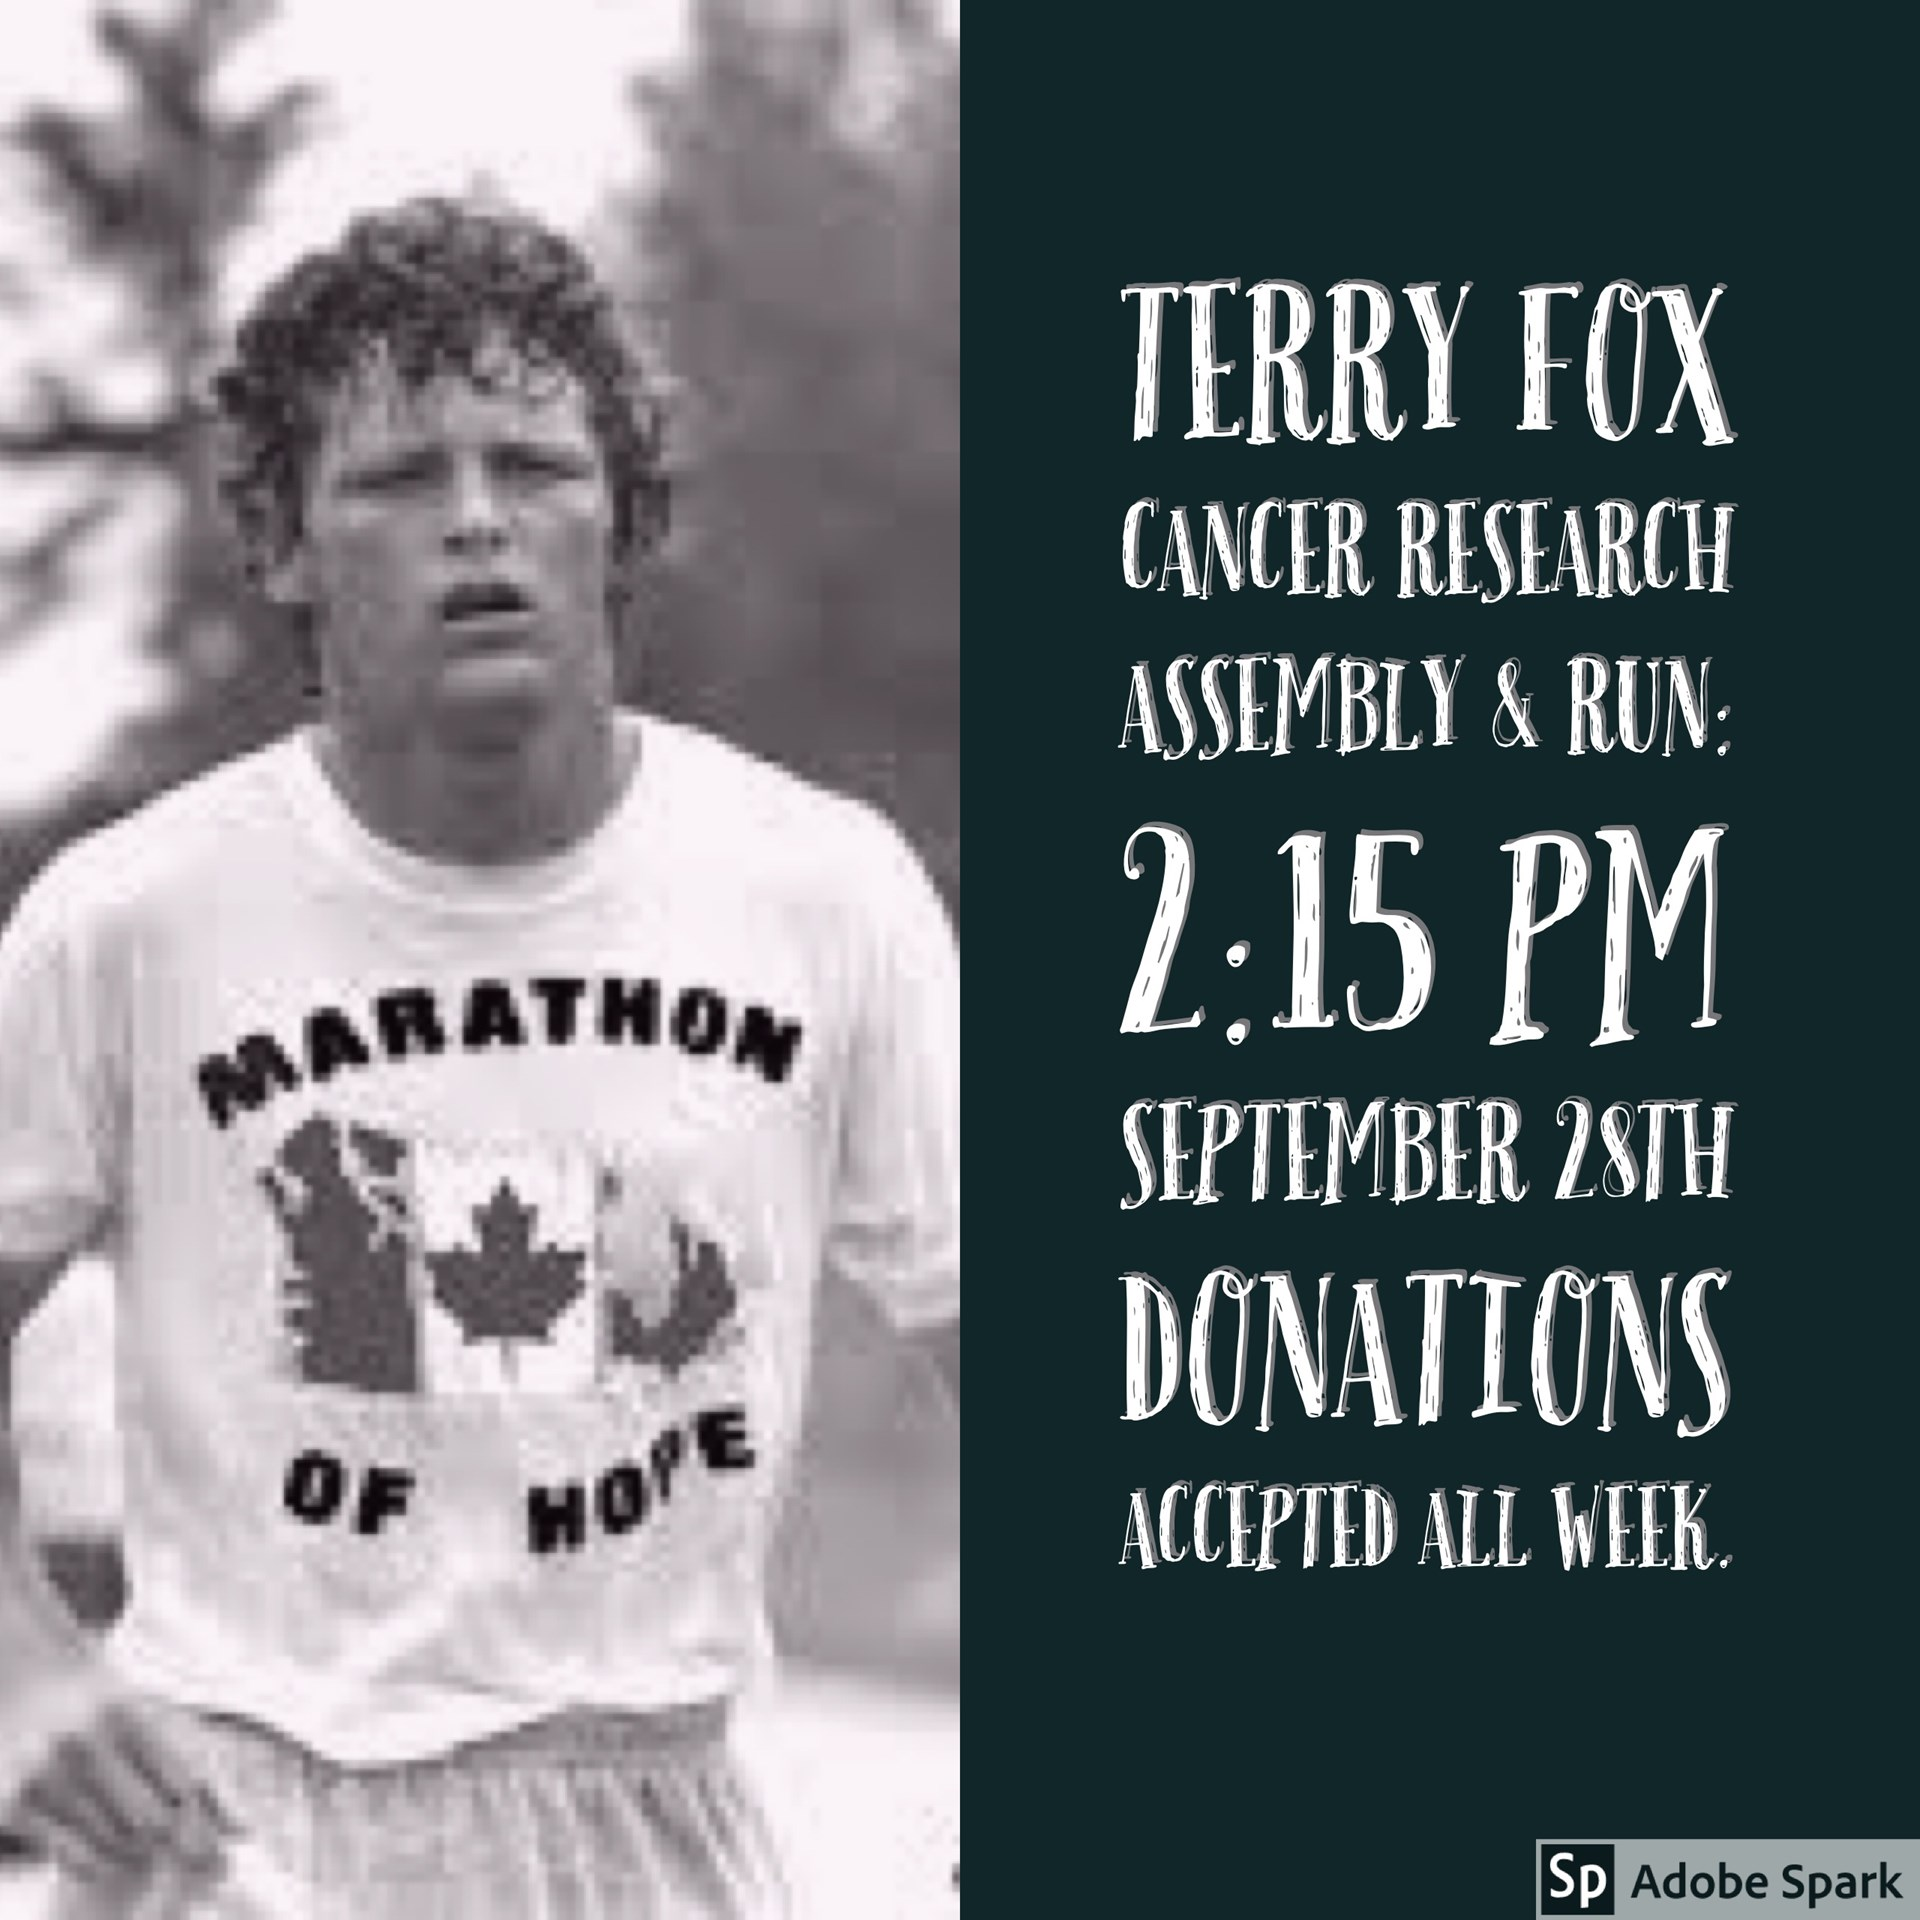 Terry%20Fox%20Announcement.JPG